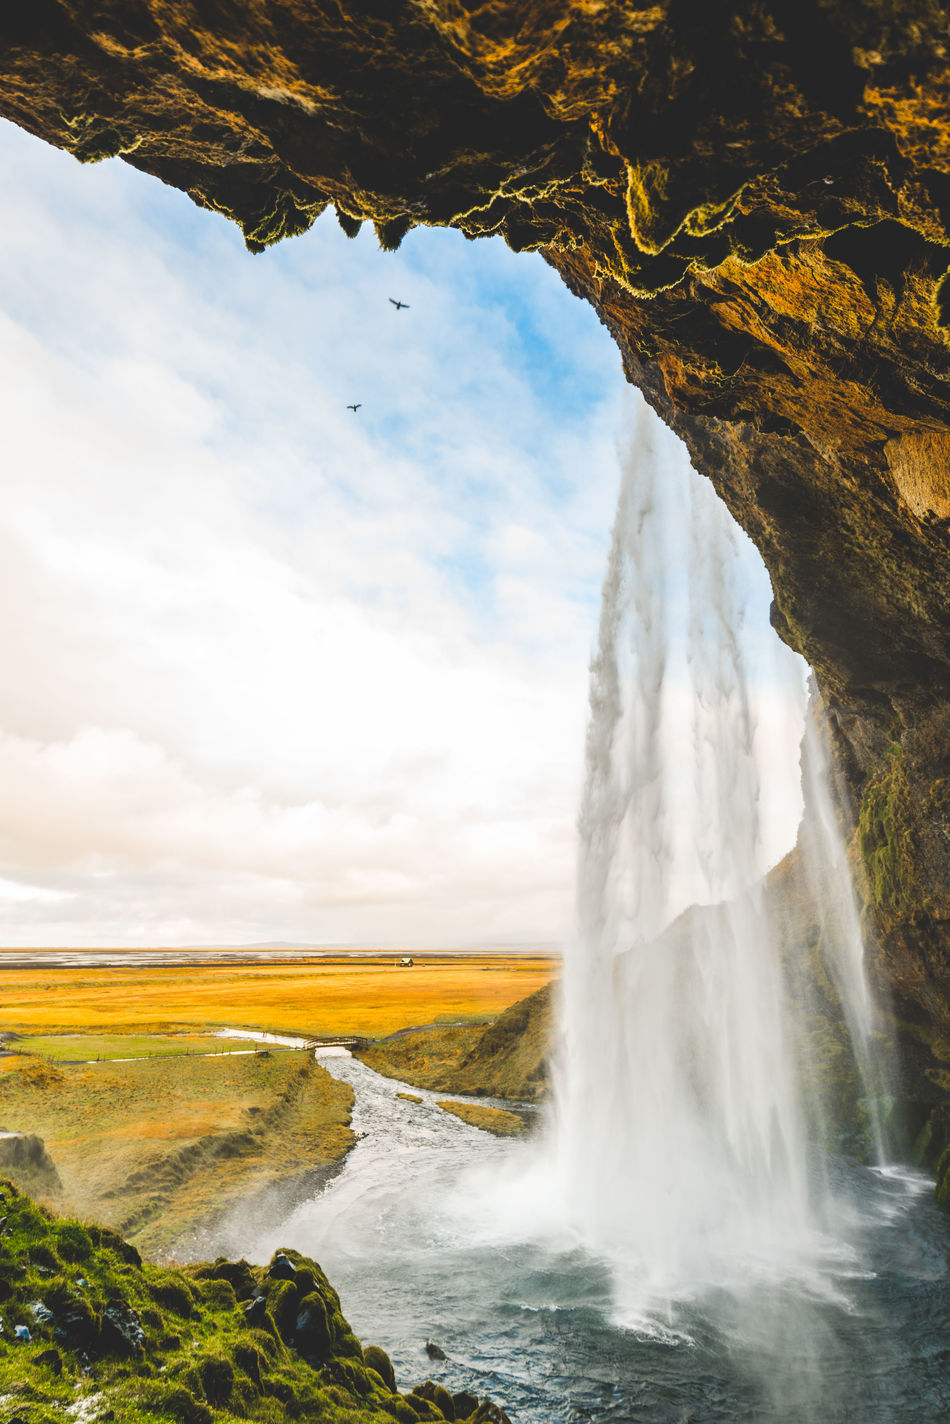 The world is very pretty, if you go see it. Water Nature Beauty In Nature Landscape Sky Scenics No People Nature Reserve Outdoors Day Waterfall Iceland Dreamy Idyllic Environment Showcase: April Full Frame Travel Travel Photography Europe Travel Destinations Cloud - Sky